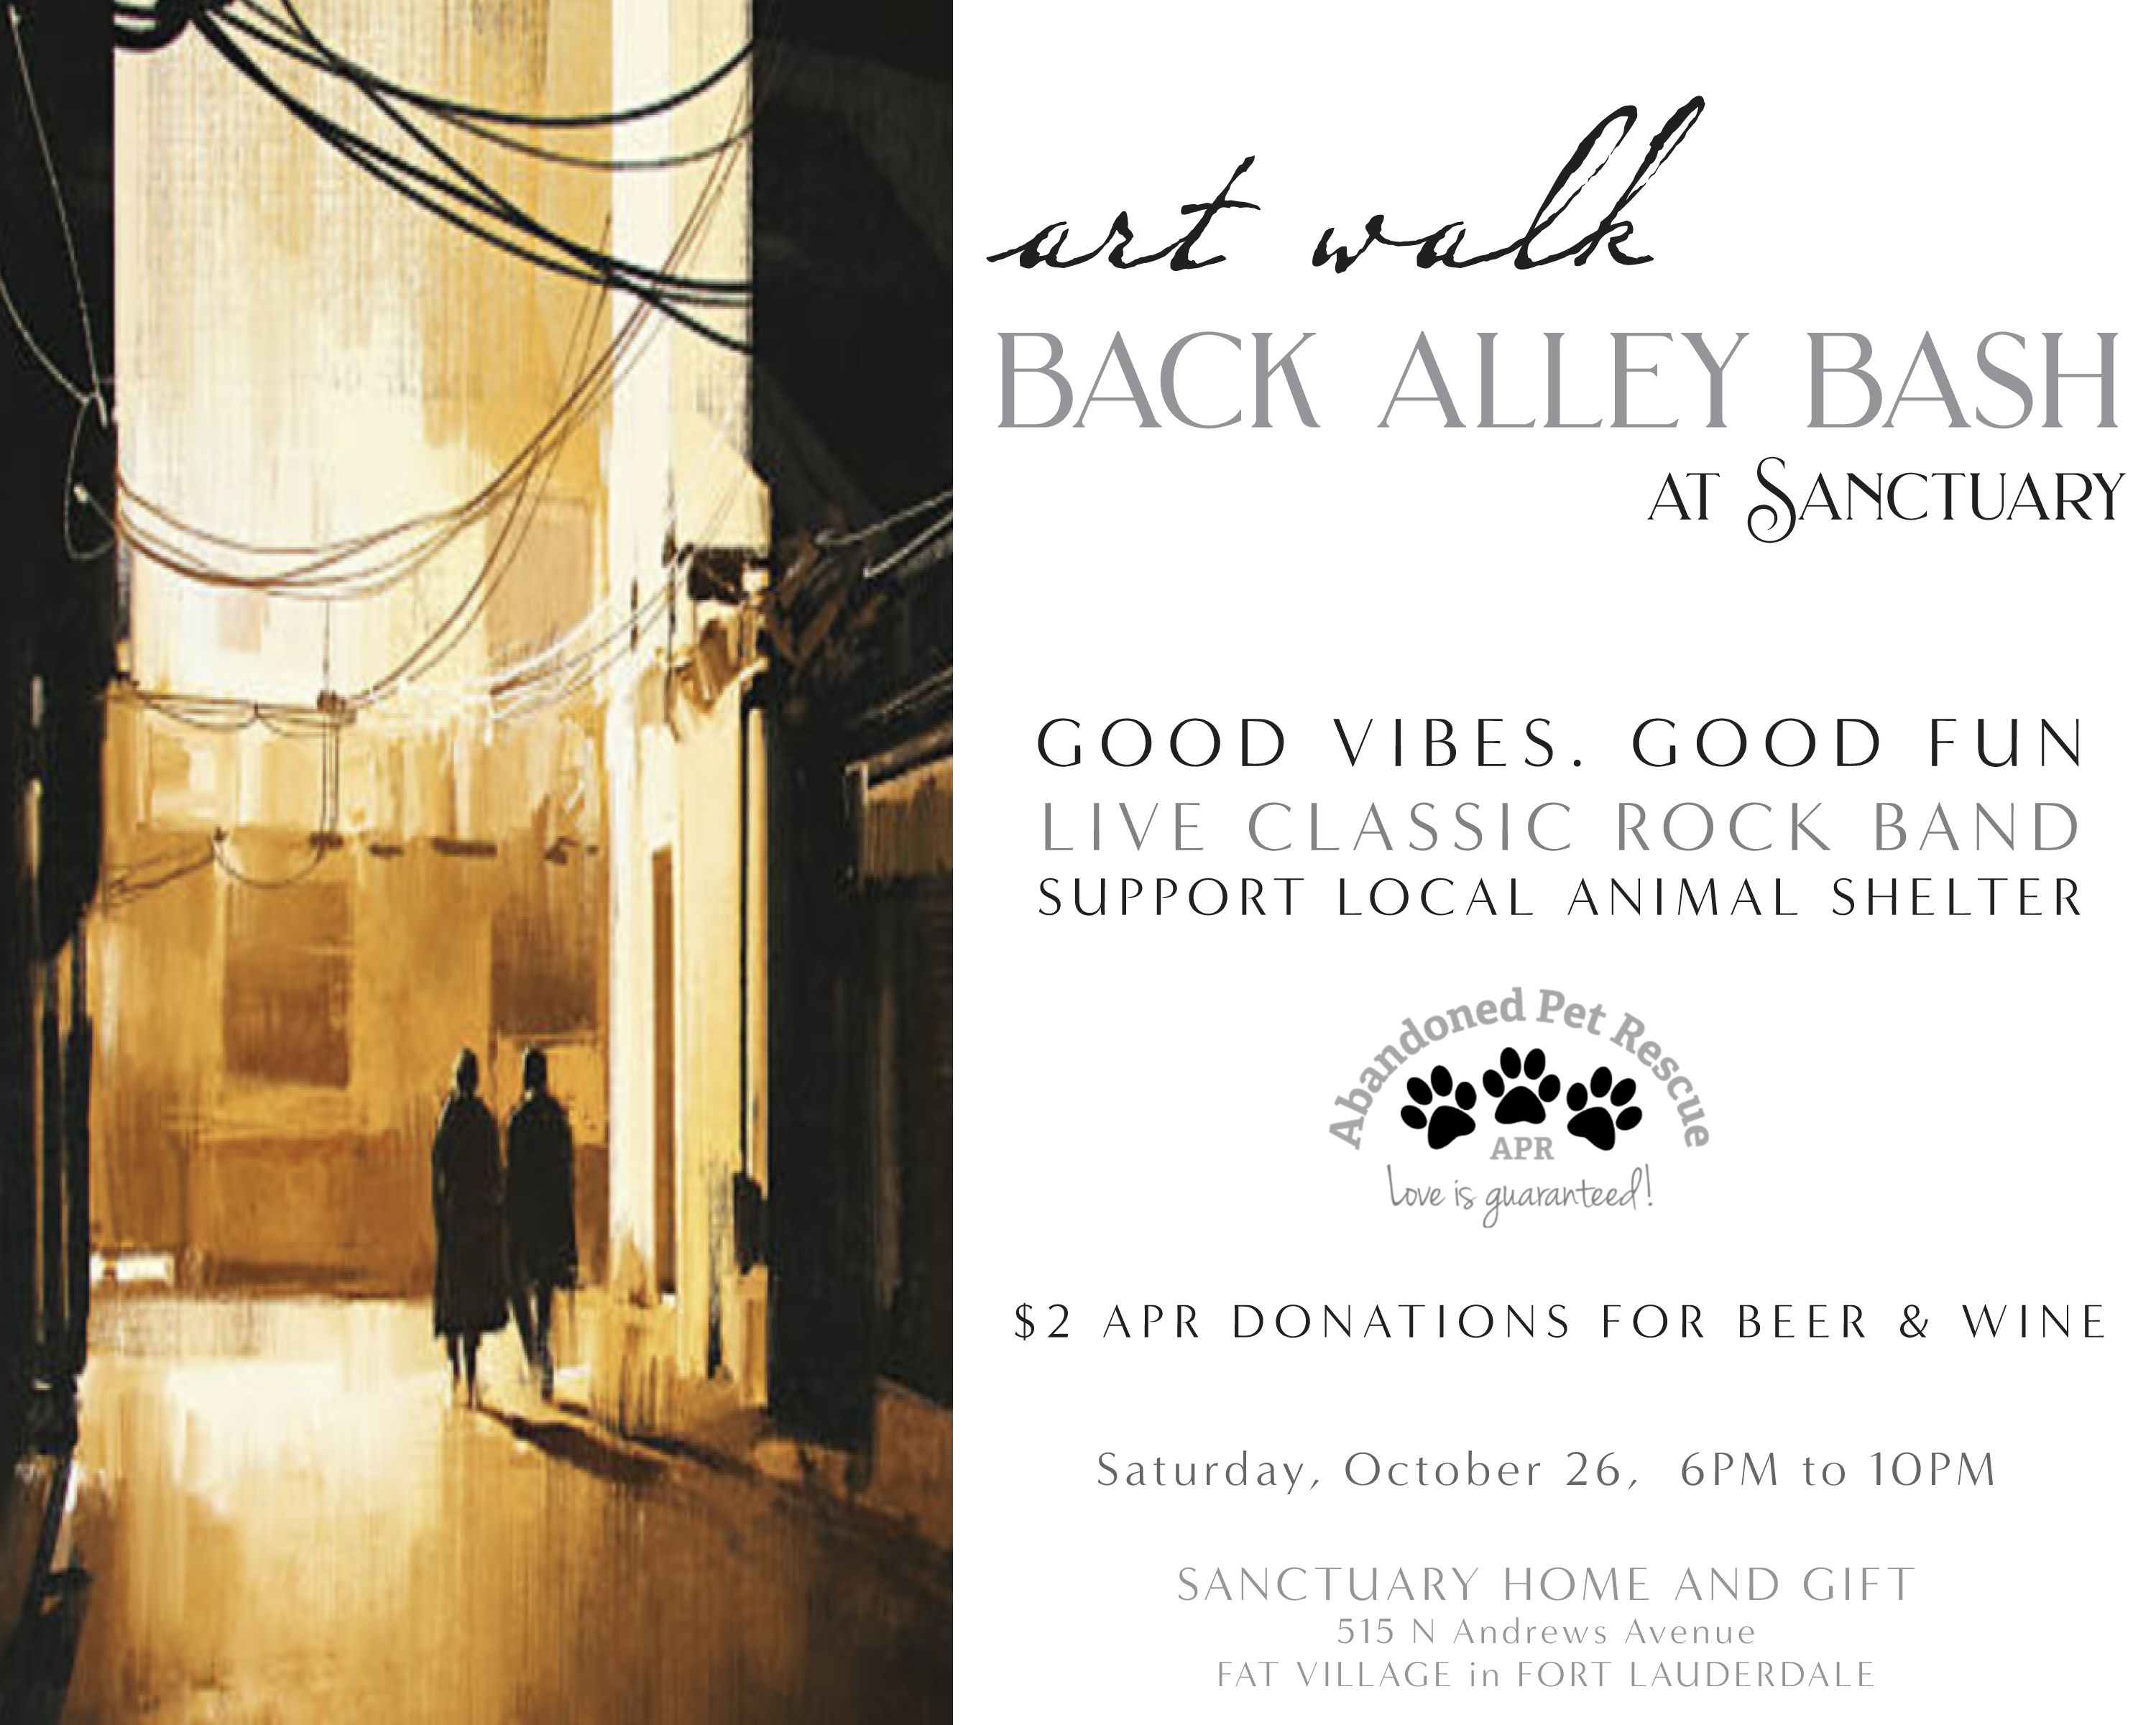 Art Walk BACK ALLEY BASH (10/26/19) @ Sanctuary Home & Gift | Fort Lauderdale | Florida | United States